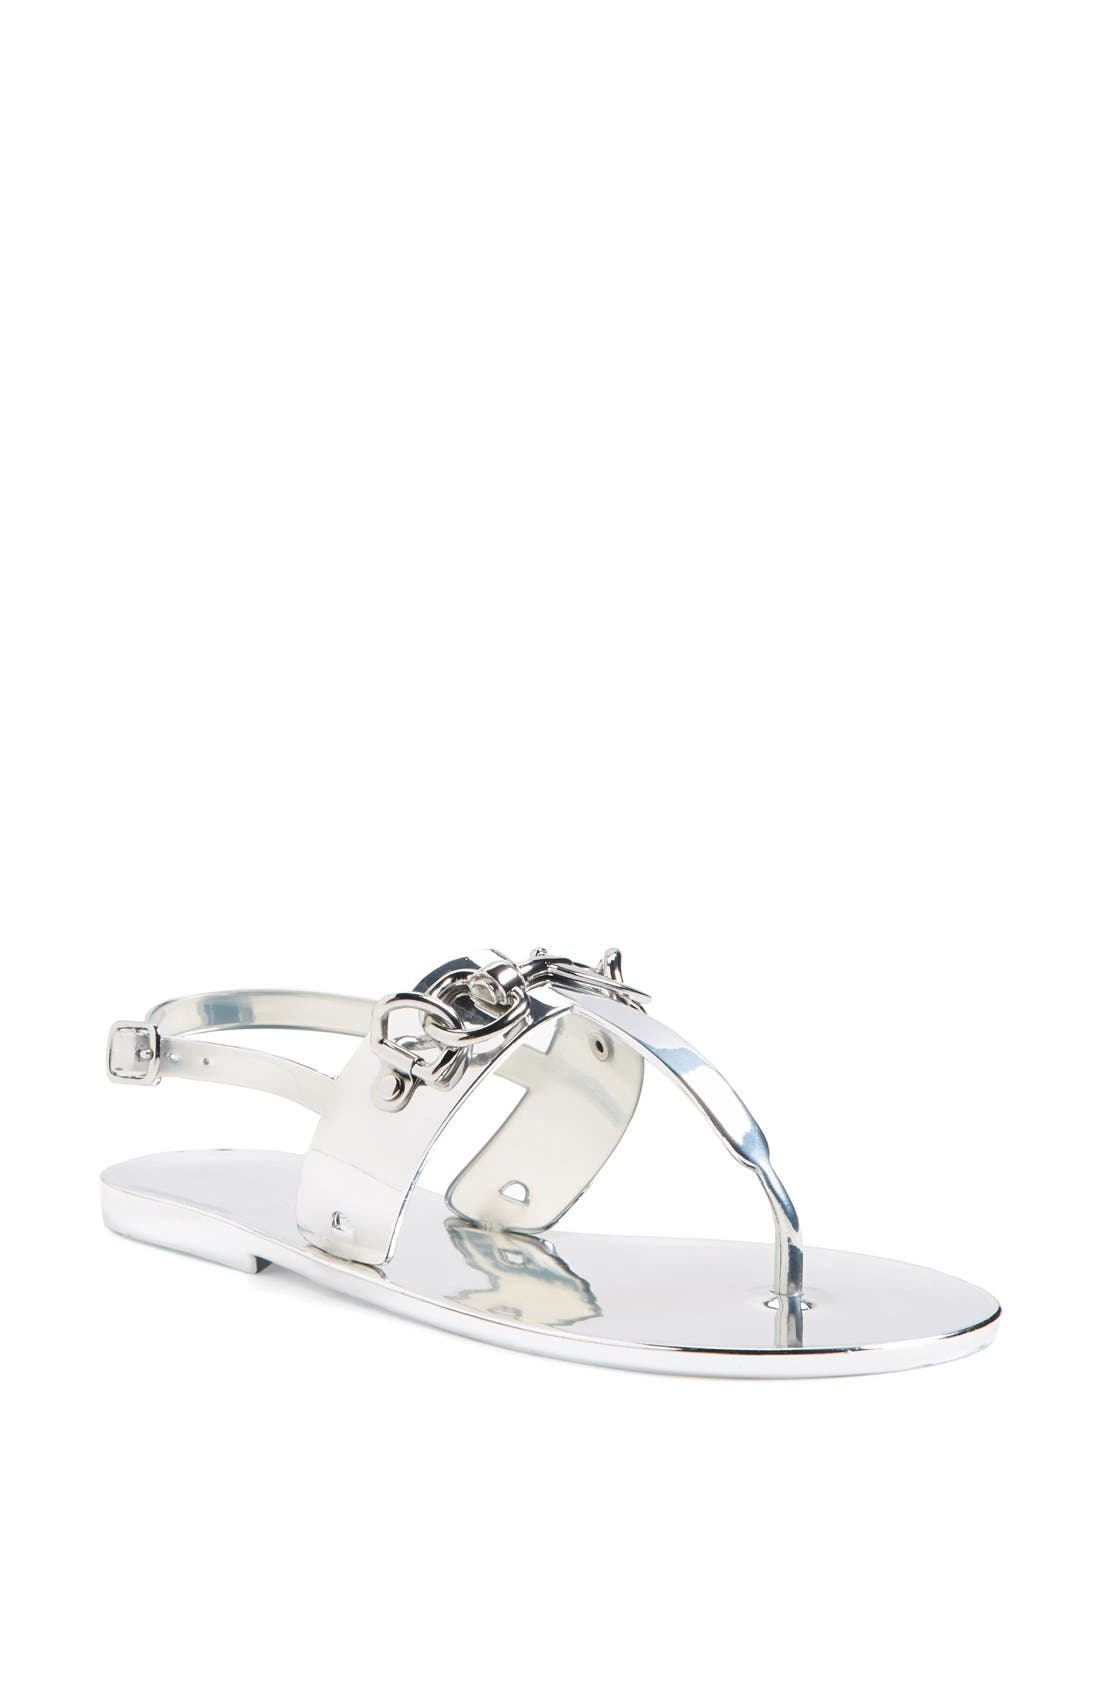 Alternate Image 1 Selected - Rebecca Minkoff 'Petra' Sandal